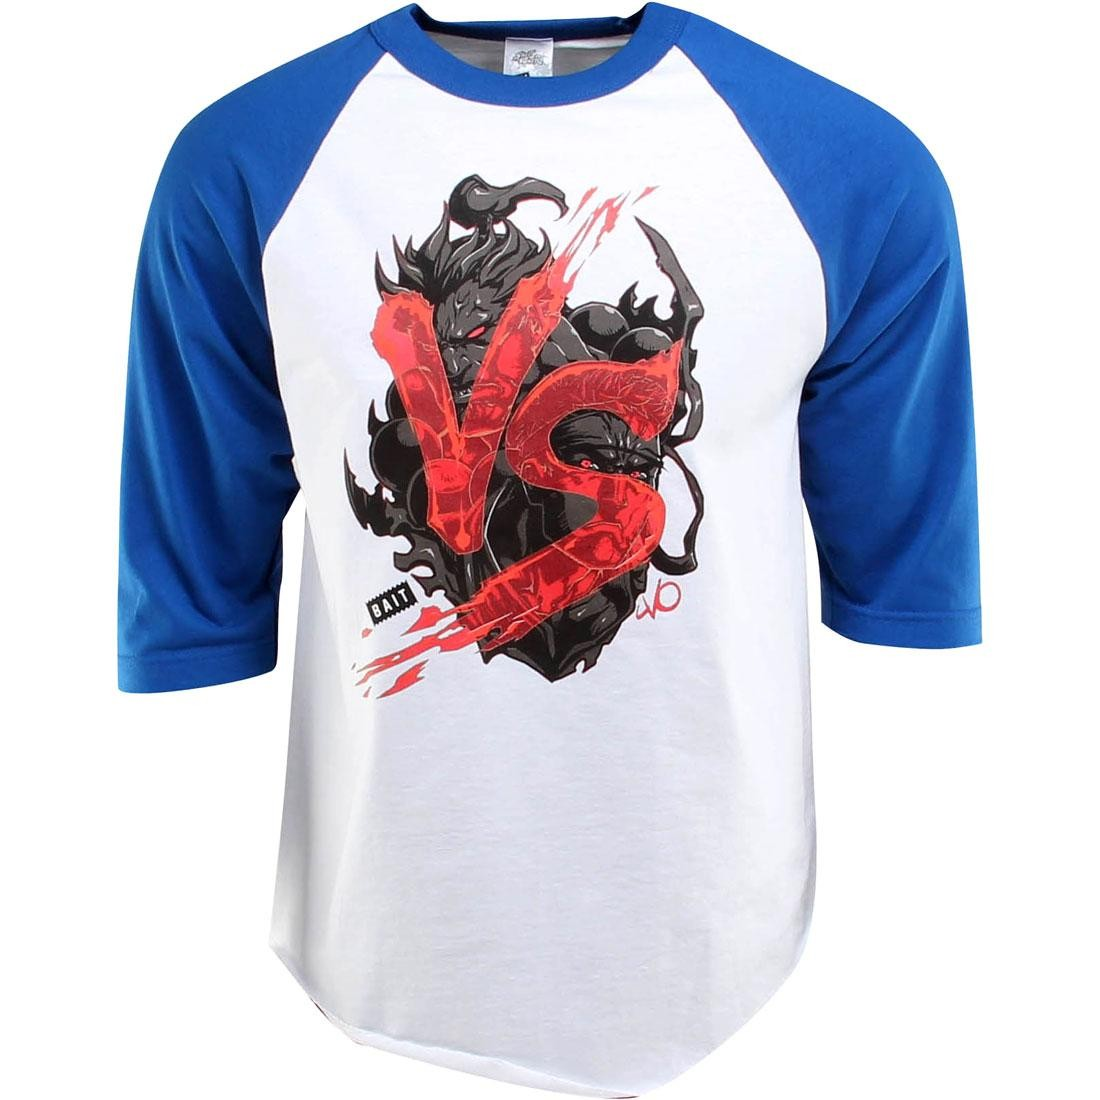 BAIT x Street Fighter Akuma VS Ryu Raglan Tee - Long Vo (white / royal blue / black) - BAIT SDCC Exclusive